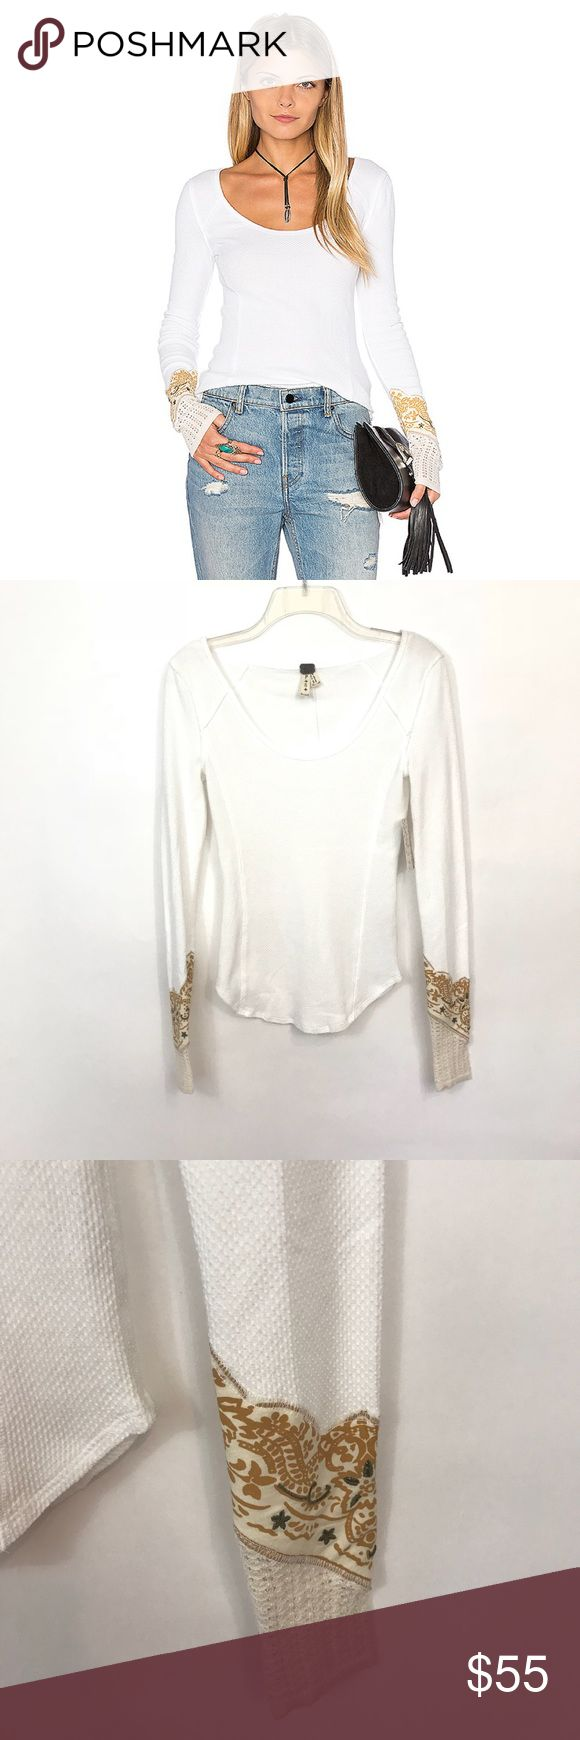 "FREE PEOPLE | Bandana Cuff White Thermal Top Free People bandana cuff thermal top. White long sleeve.   Condition: new with tags Measurements (laying flat): 15"" pit to pit 24"" length  Item location: bin 62 Free People Tops"